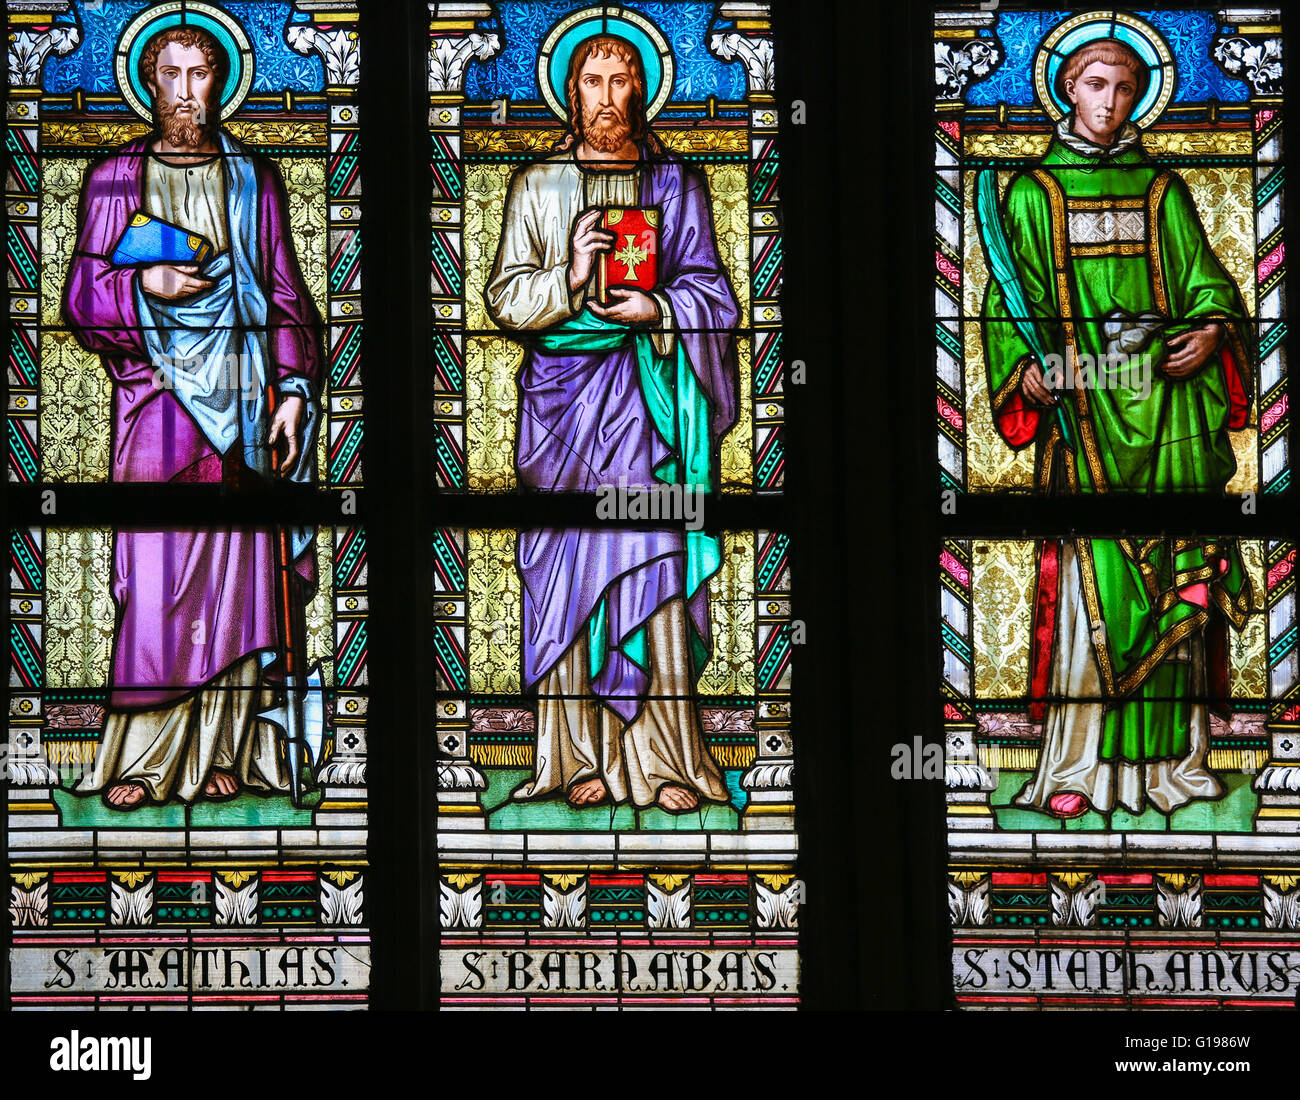 Stained Glass window in St. Vitus Cathedral, Prague, depicting Saint Mathias, Saint Barnabas and Saint Stephen - Stock Image